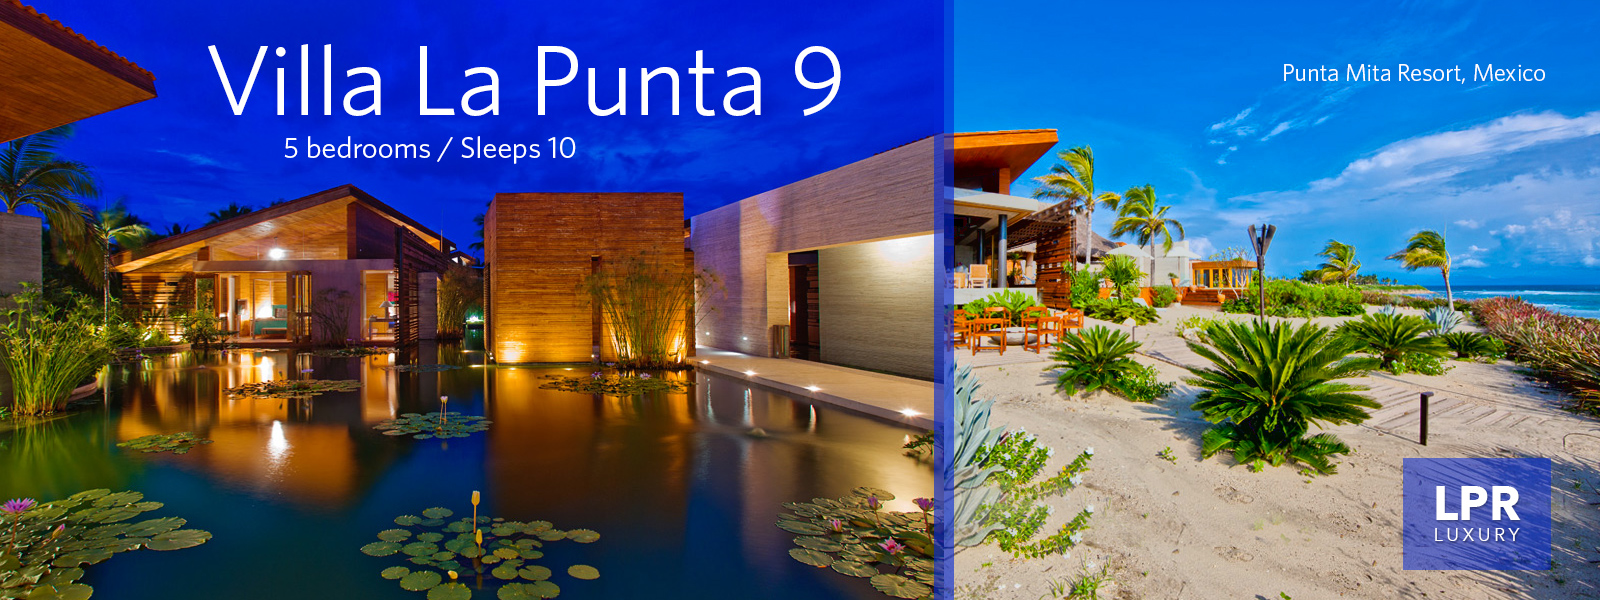 Villa La Punta 9 - Punta Mita Mexico - Luxury Resort Real Estate and Vacation Rentals Villas